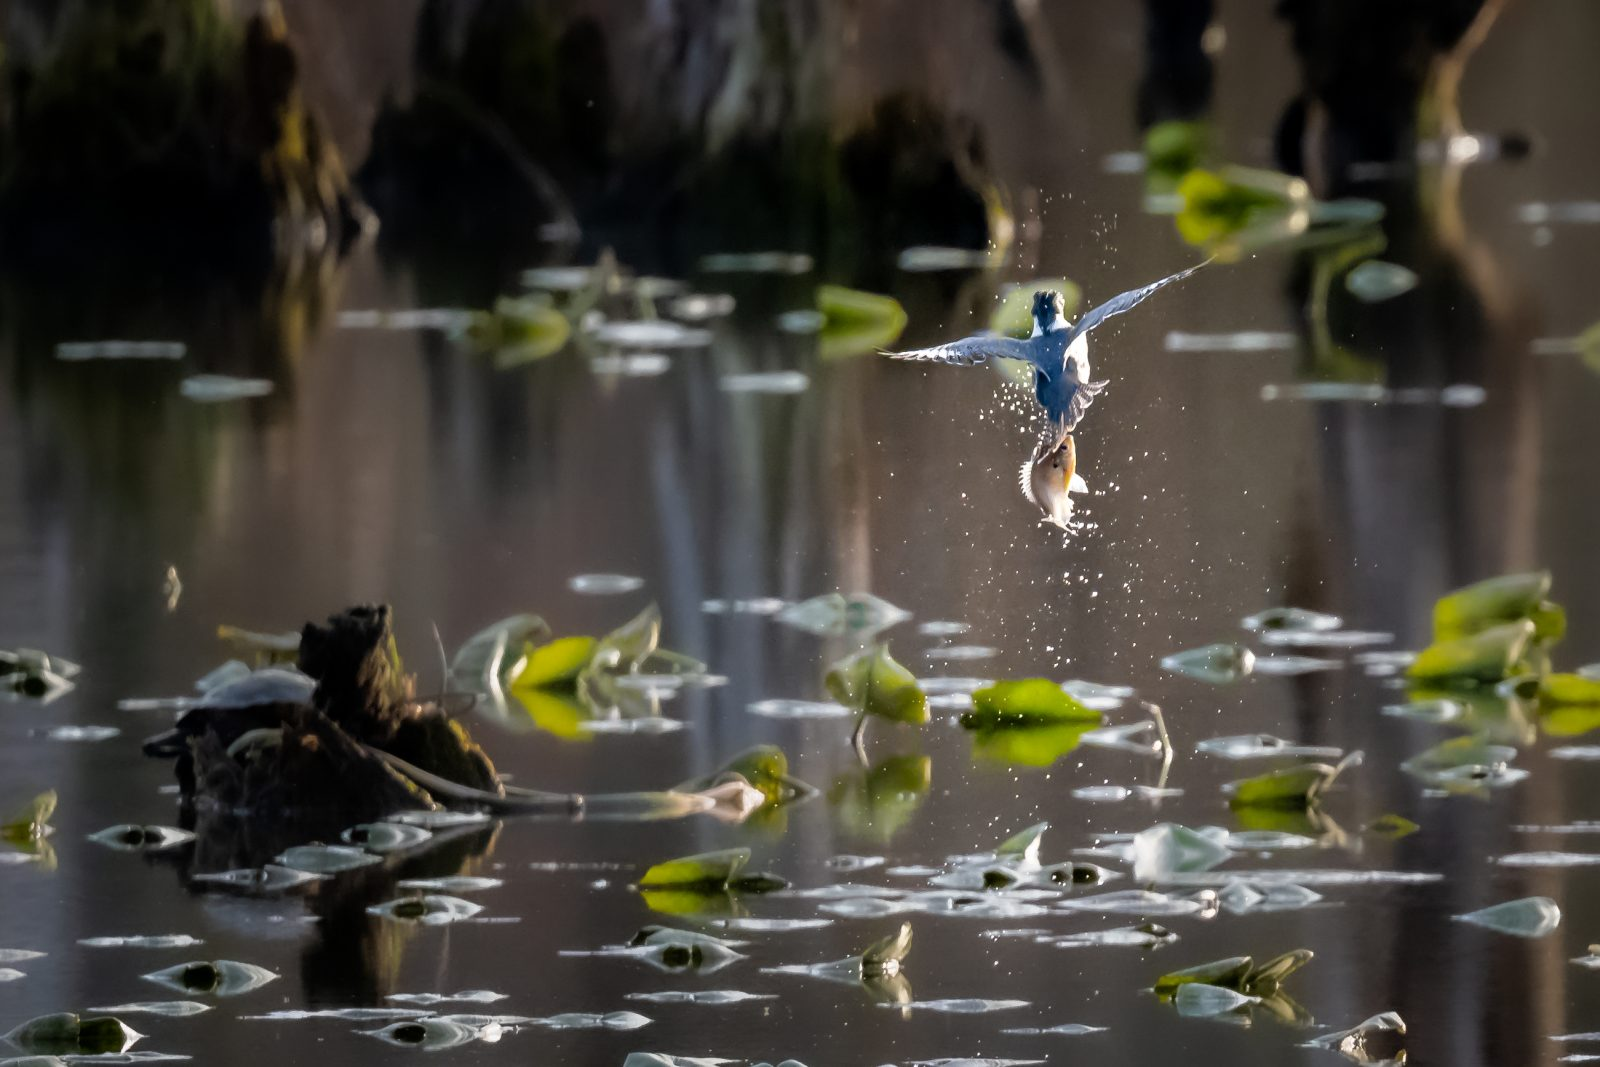 Fishing with a Kingfisher